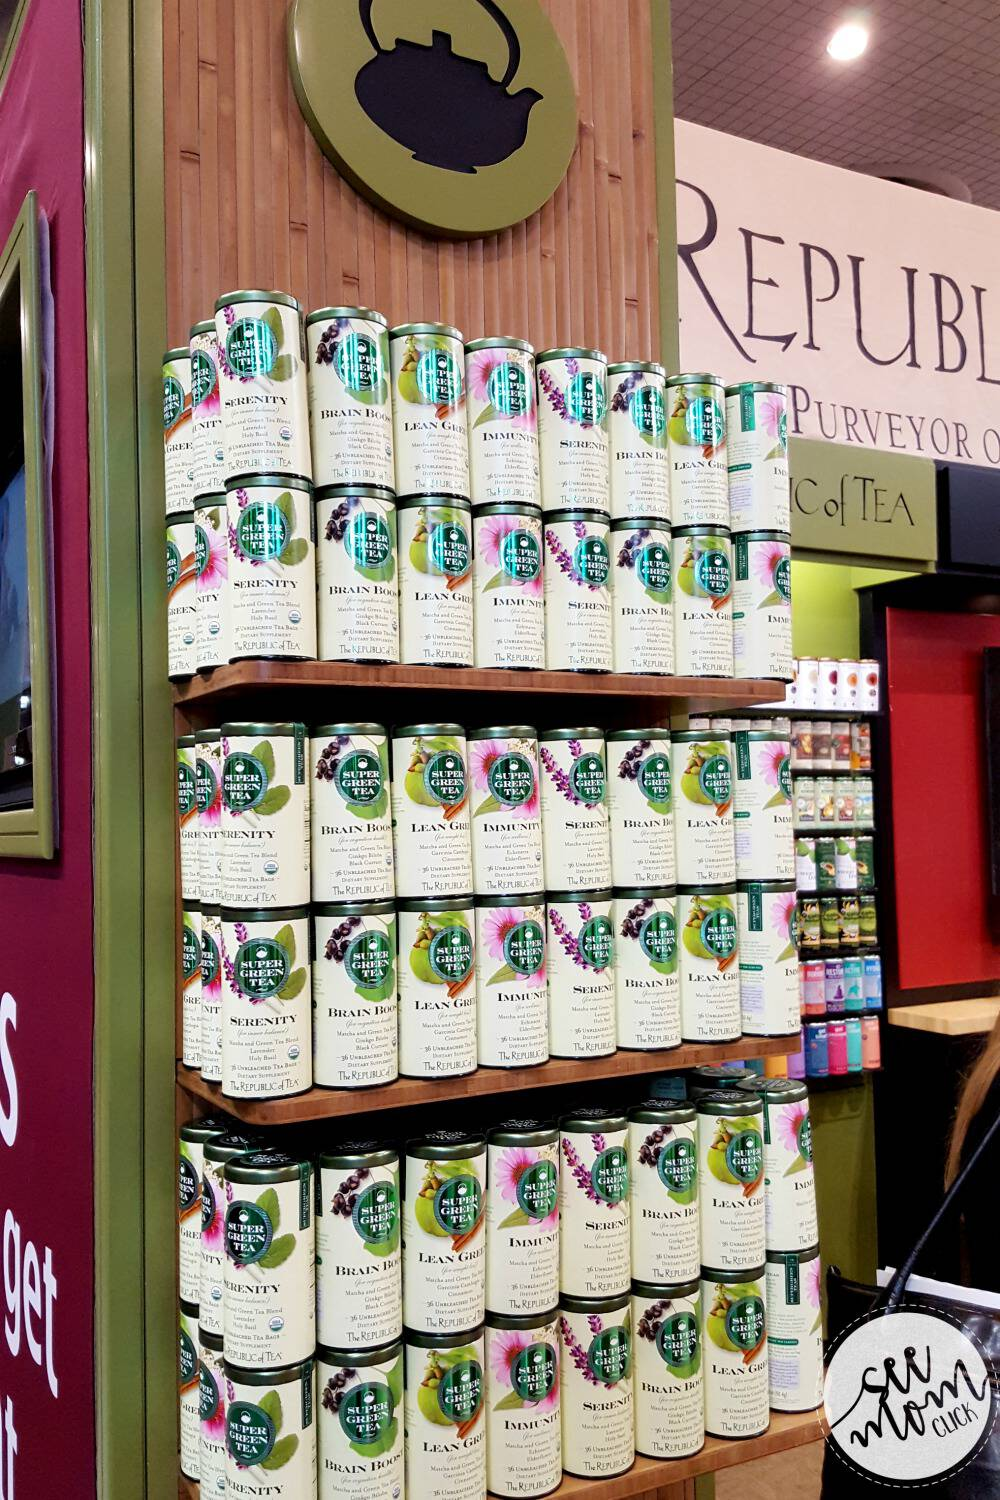 The Republic of Tea has a new healthful collection of SuperGreen Teas that are both delicious and beneficial. Each one contains ingredients to target a specific area for improved health.